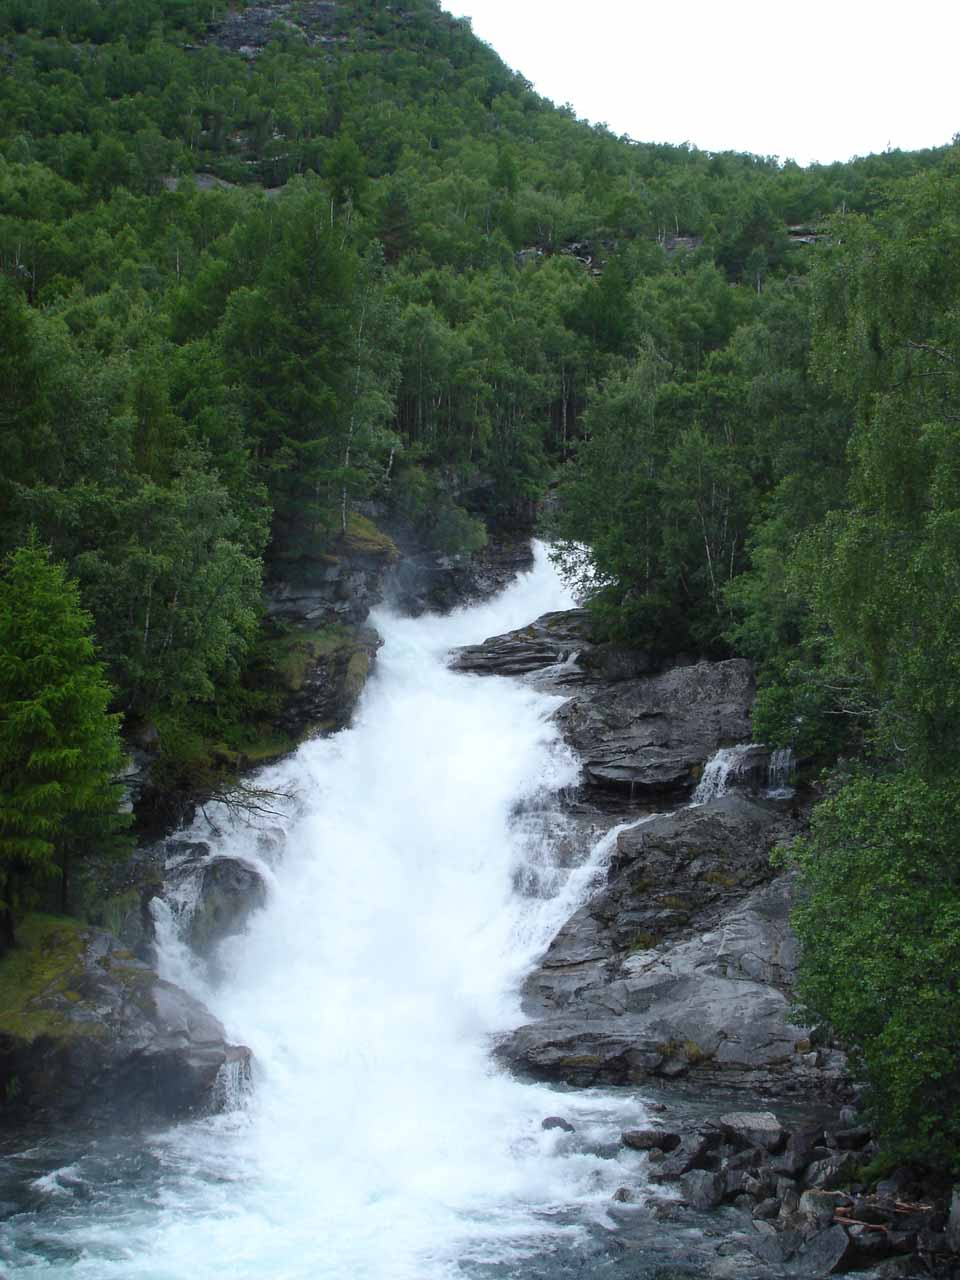 This was a waterfall we saw somewhere between Øvre Årdal and the trailhead for the Utladalen hike